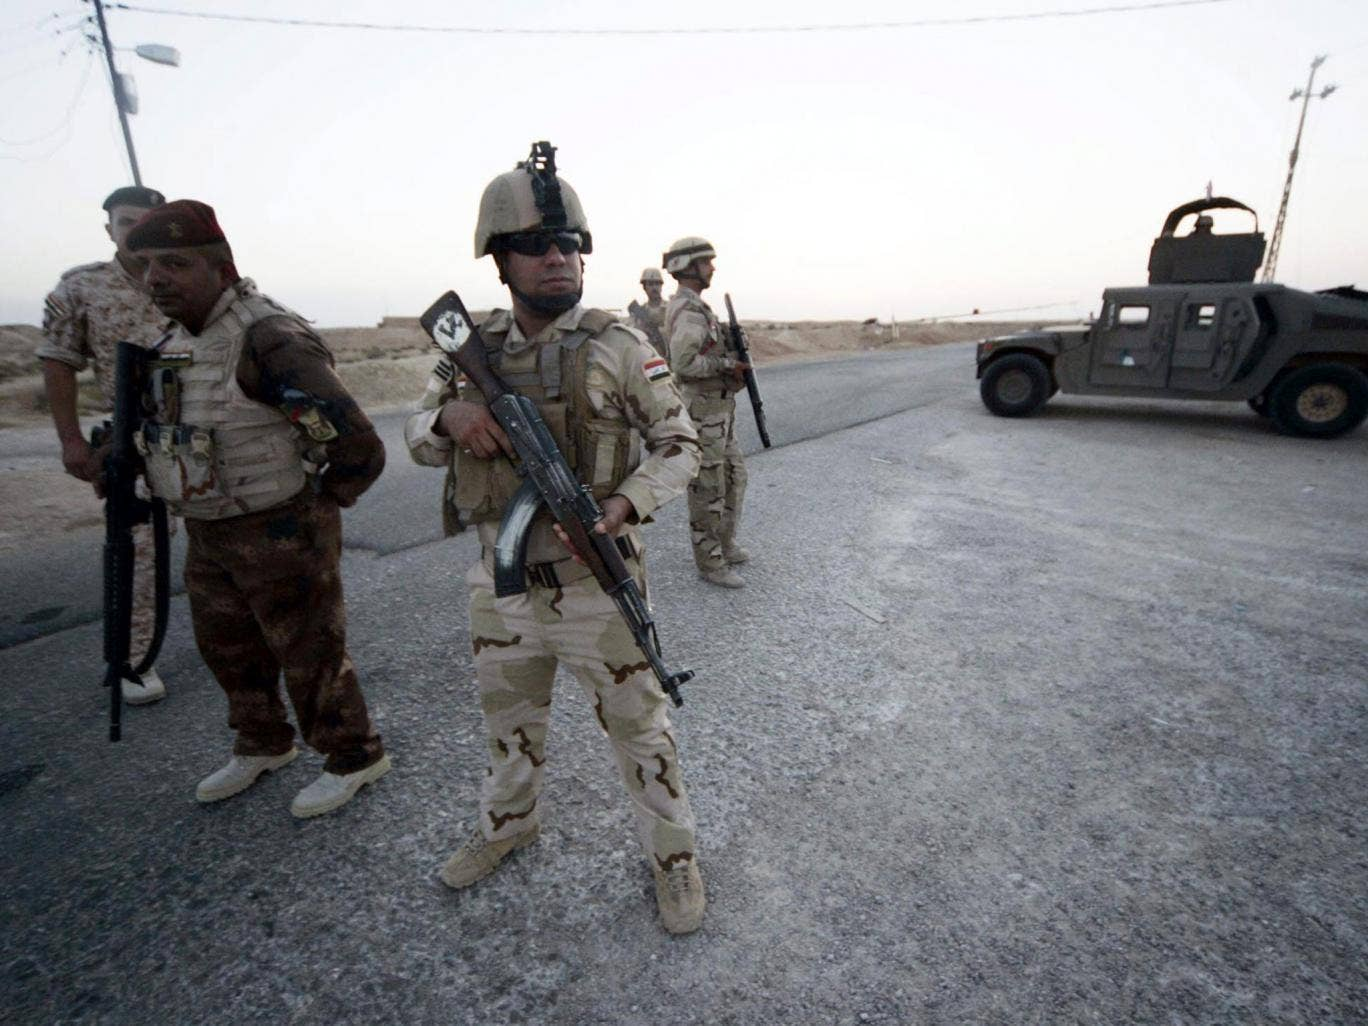 There have been claims that Iraqi soldiers have abandoned their positions along the border with Saudi Arabia